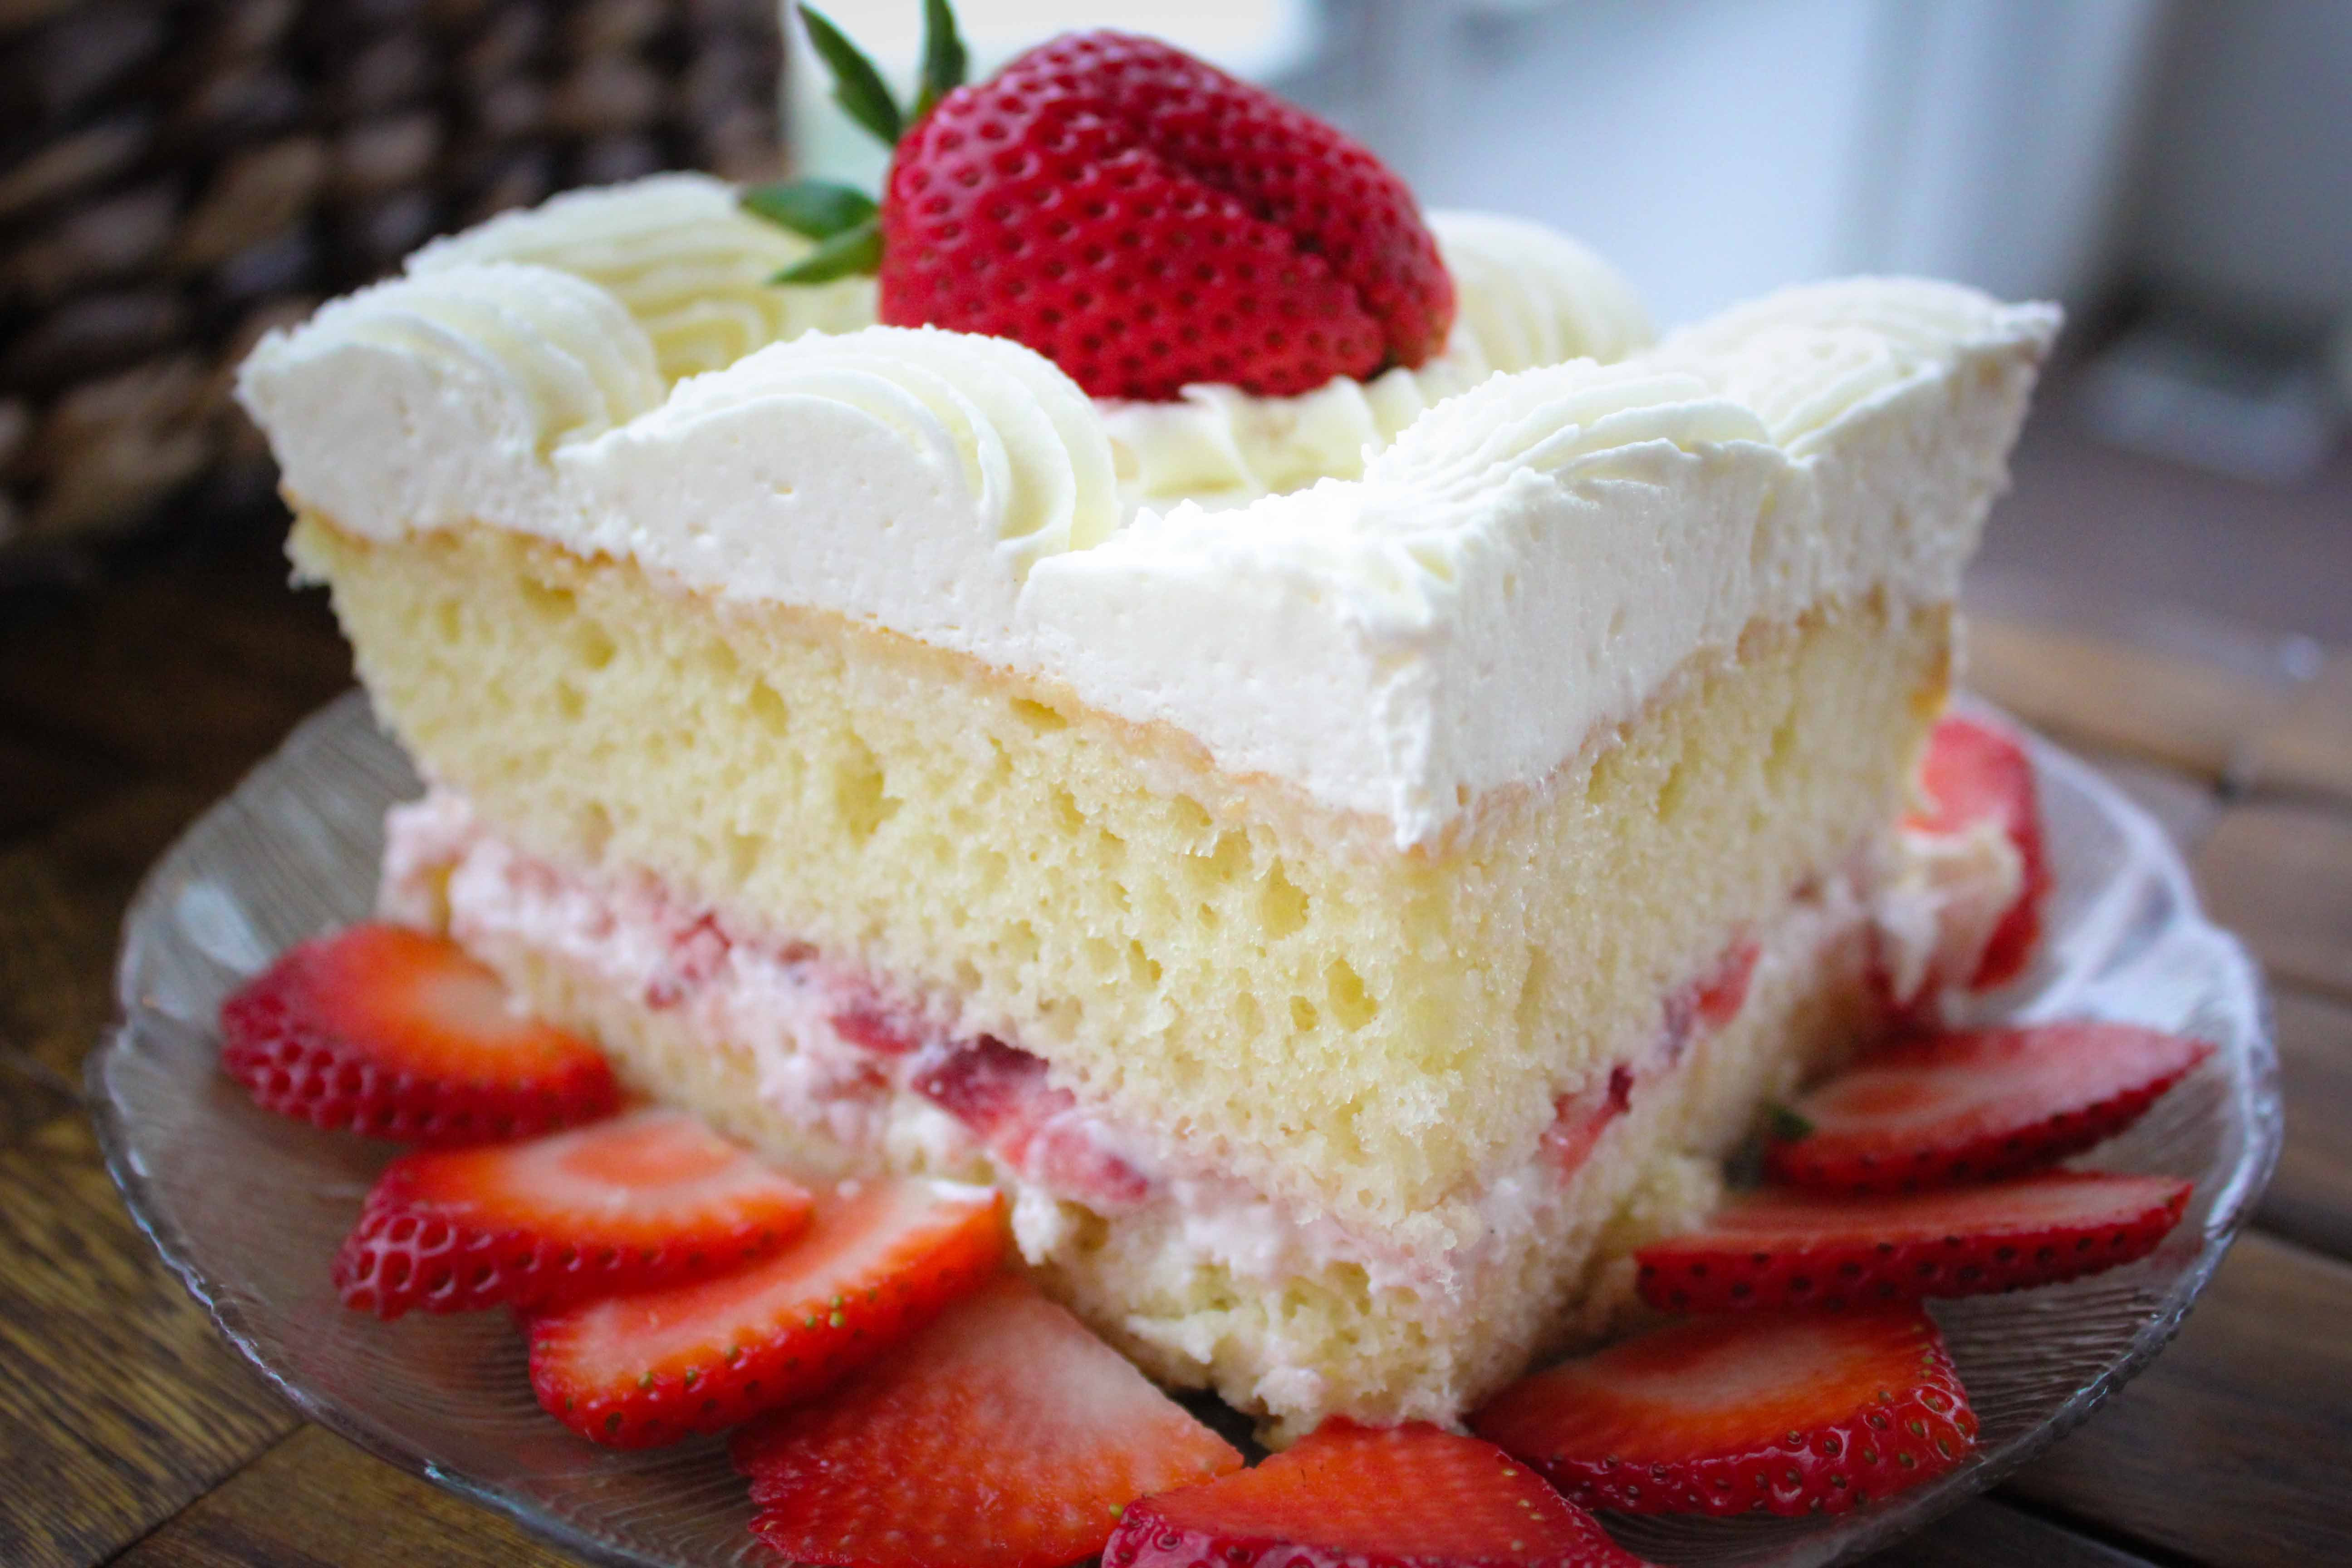 Wheatfields Strawberry Wedding Cake Recipe  Full Service Bakery Restaurant & Catering